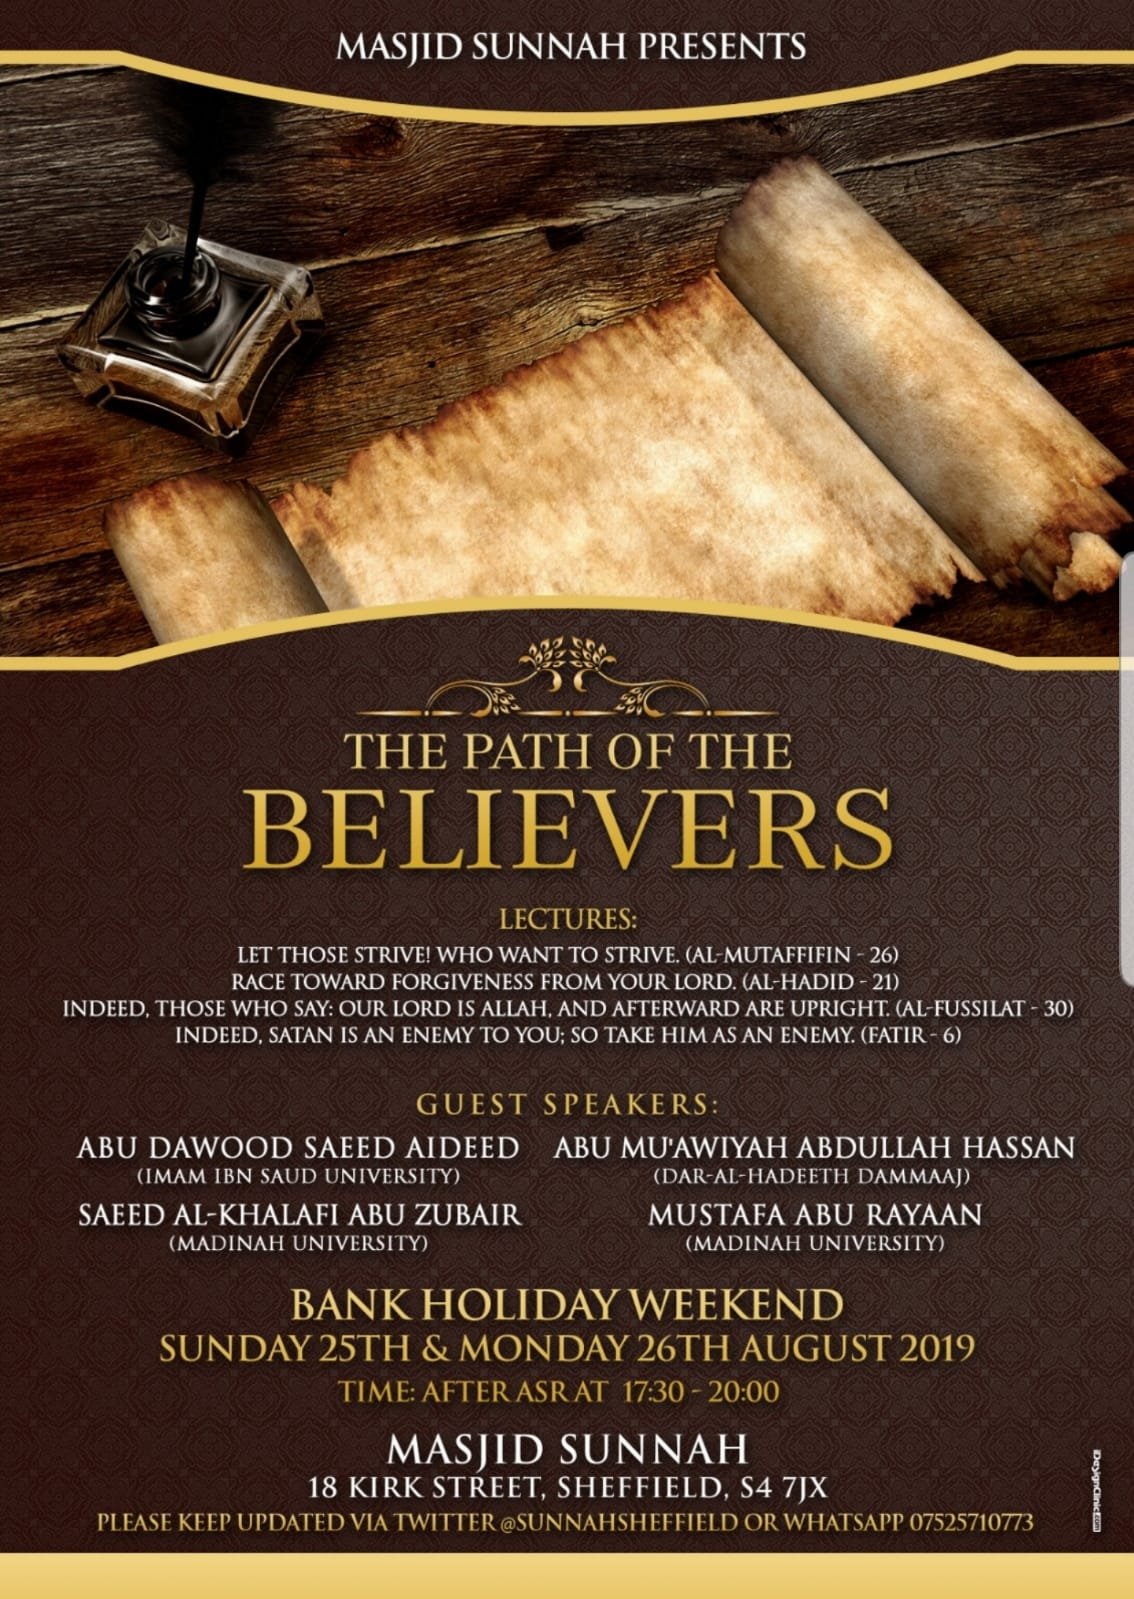 The Path of the Believers